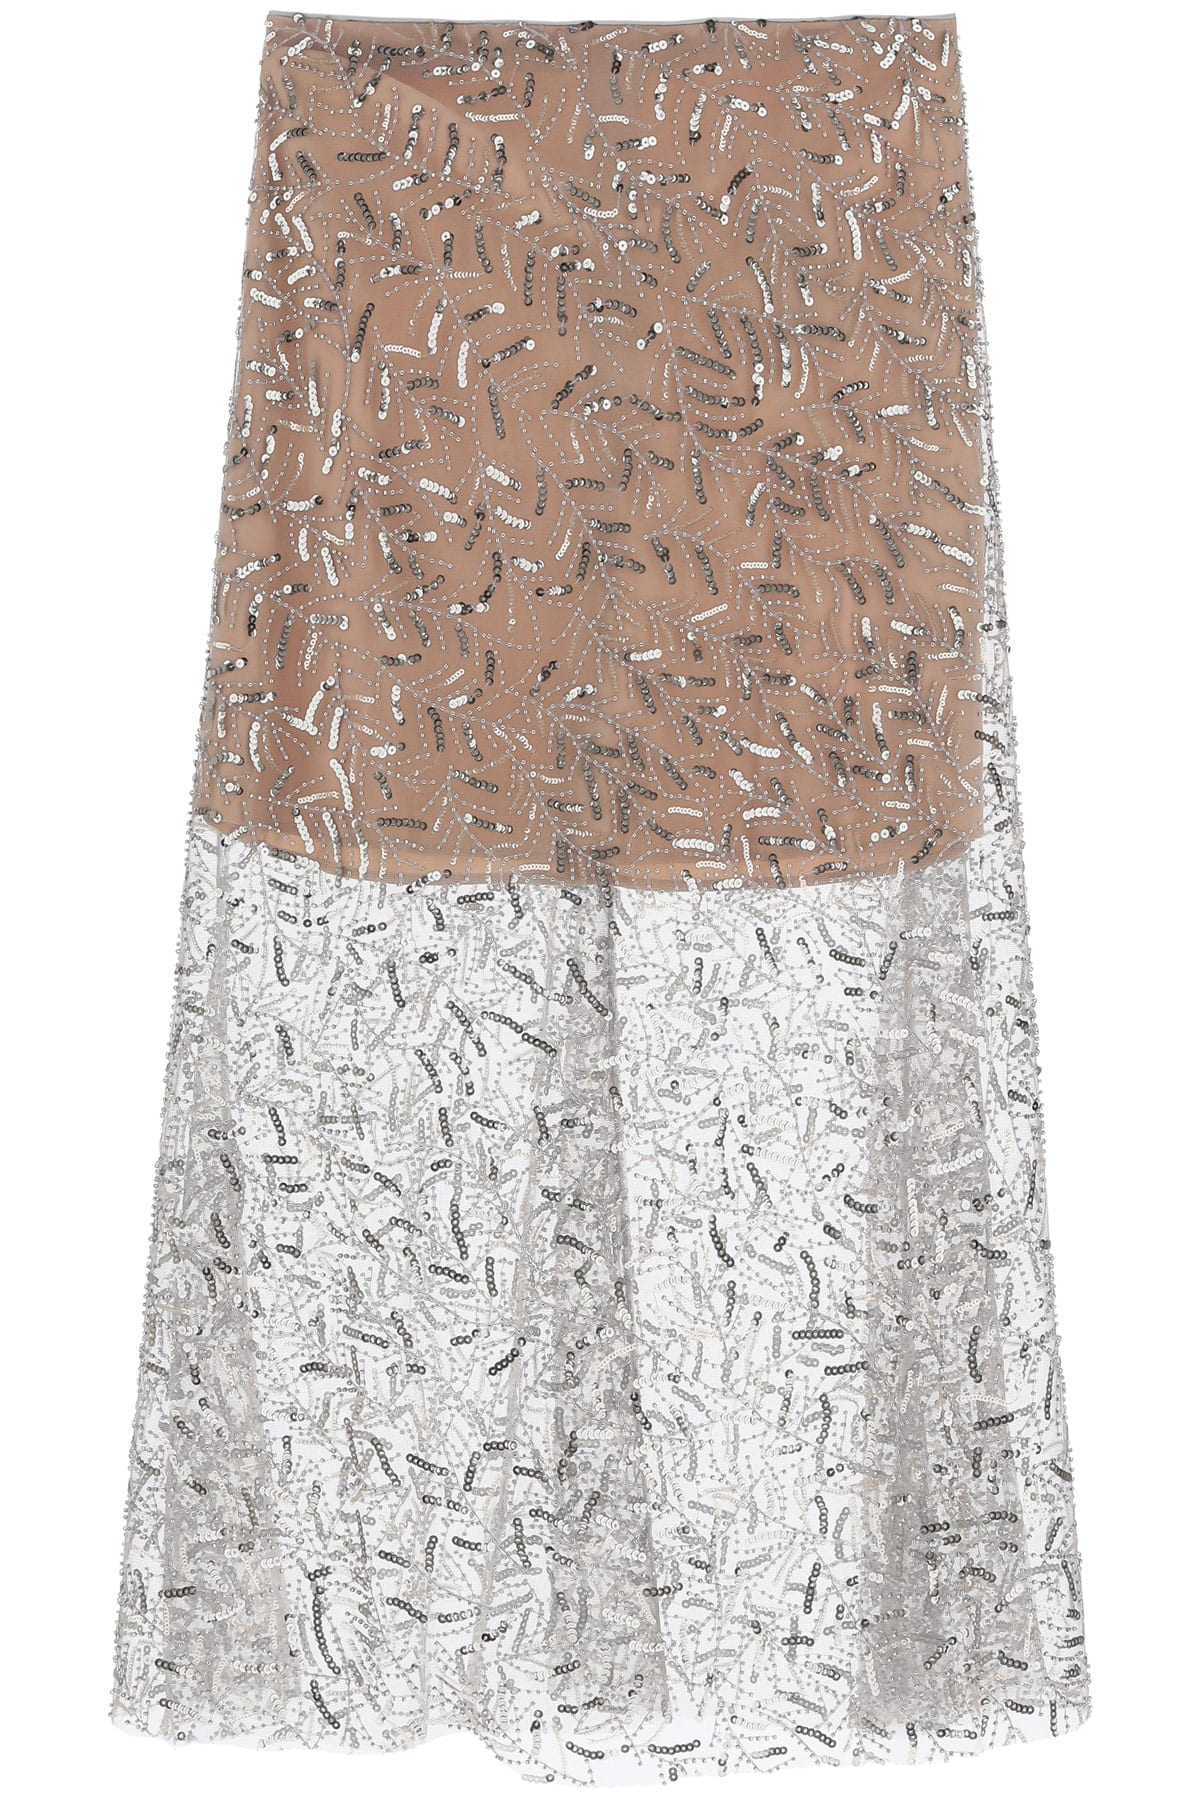 SELF PORTRAIT SEQUINED TULLE MIDI SKIRT 10 Beige, Yellow, Silver